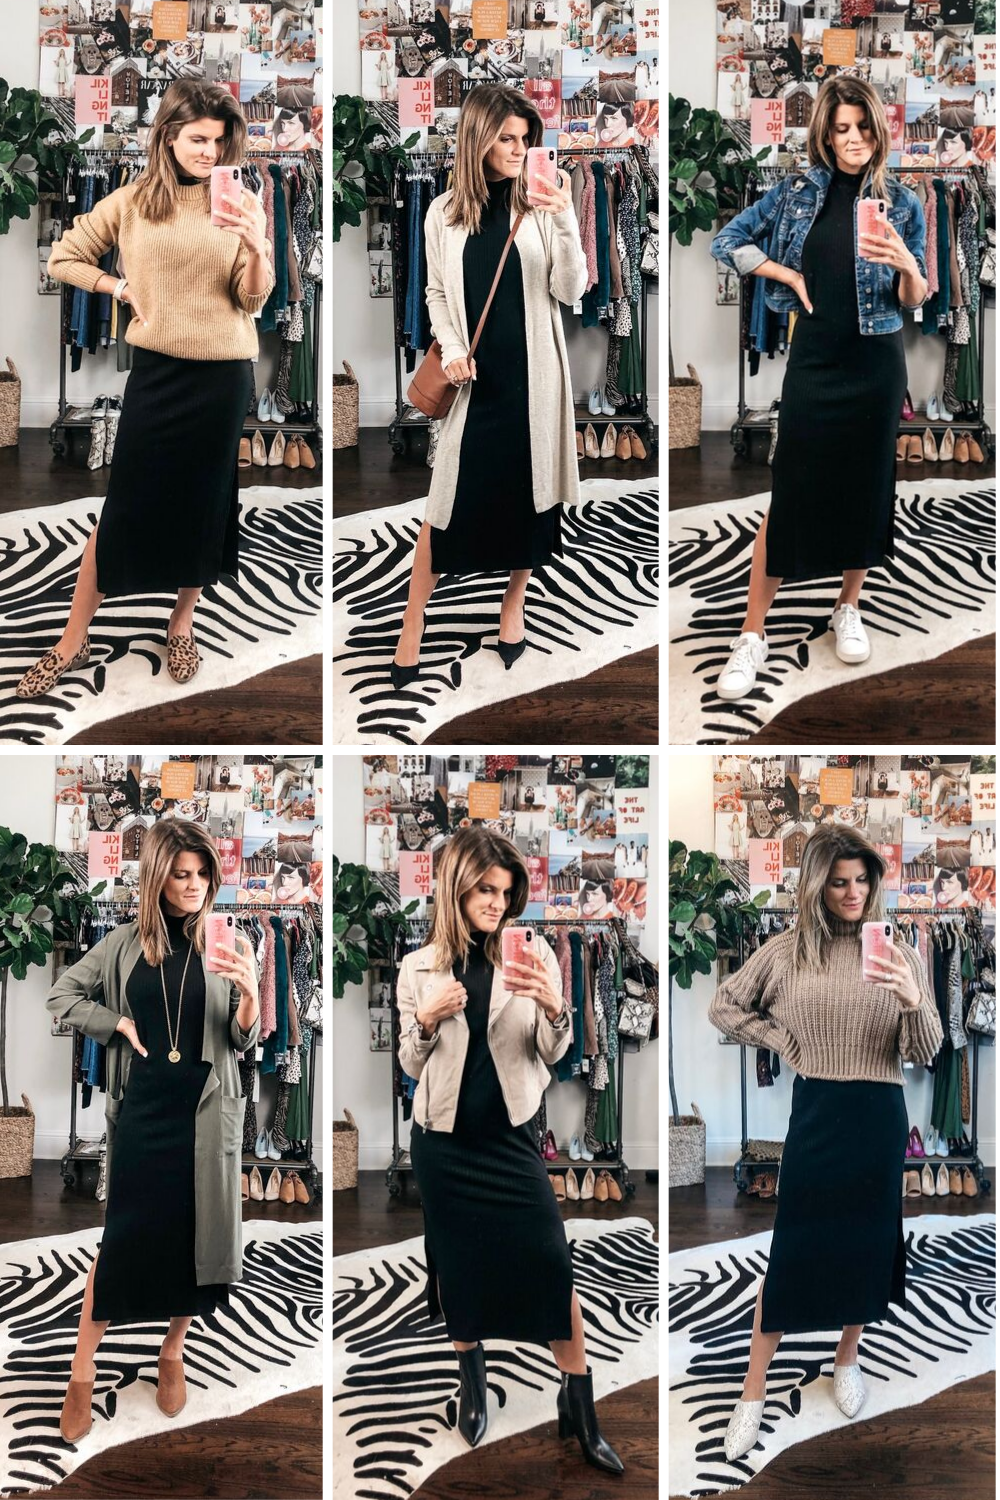 How To Style A Midi Dress In Winter Winter Dress Outfits Midi Dress Outfit Floral Midi Dress Outfit [ 1499 x 1000 Pixel ]